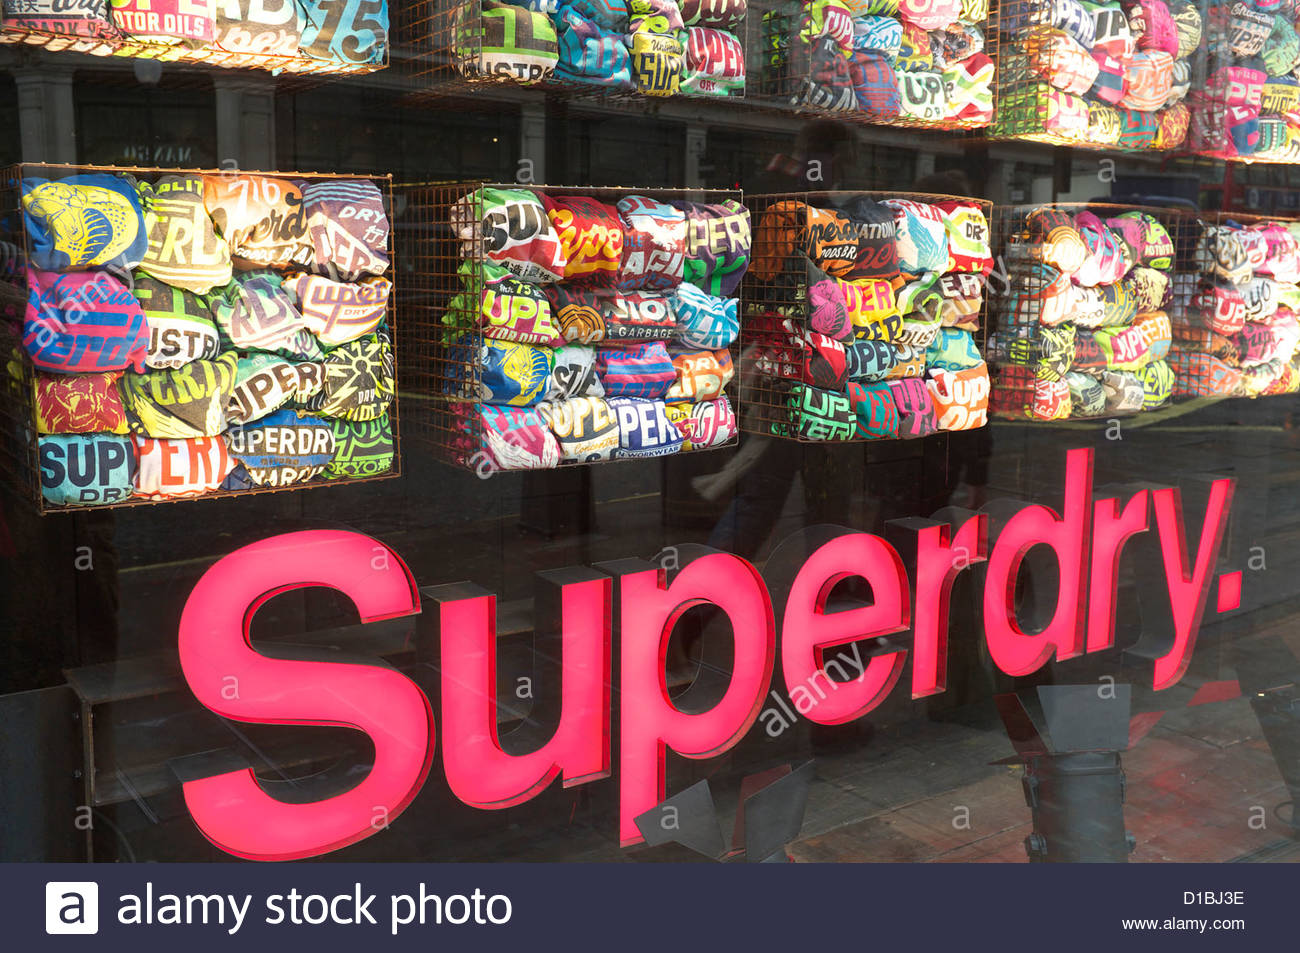 Shop window display of a Superdry clothing store in London, UK. - Stock Image